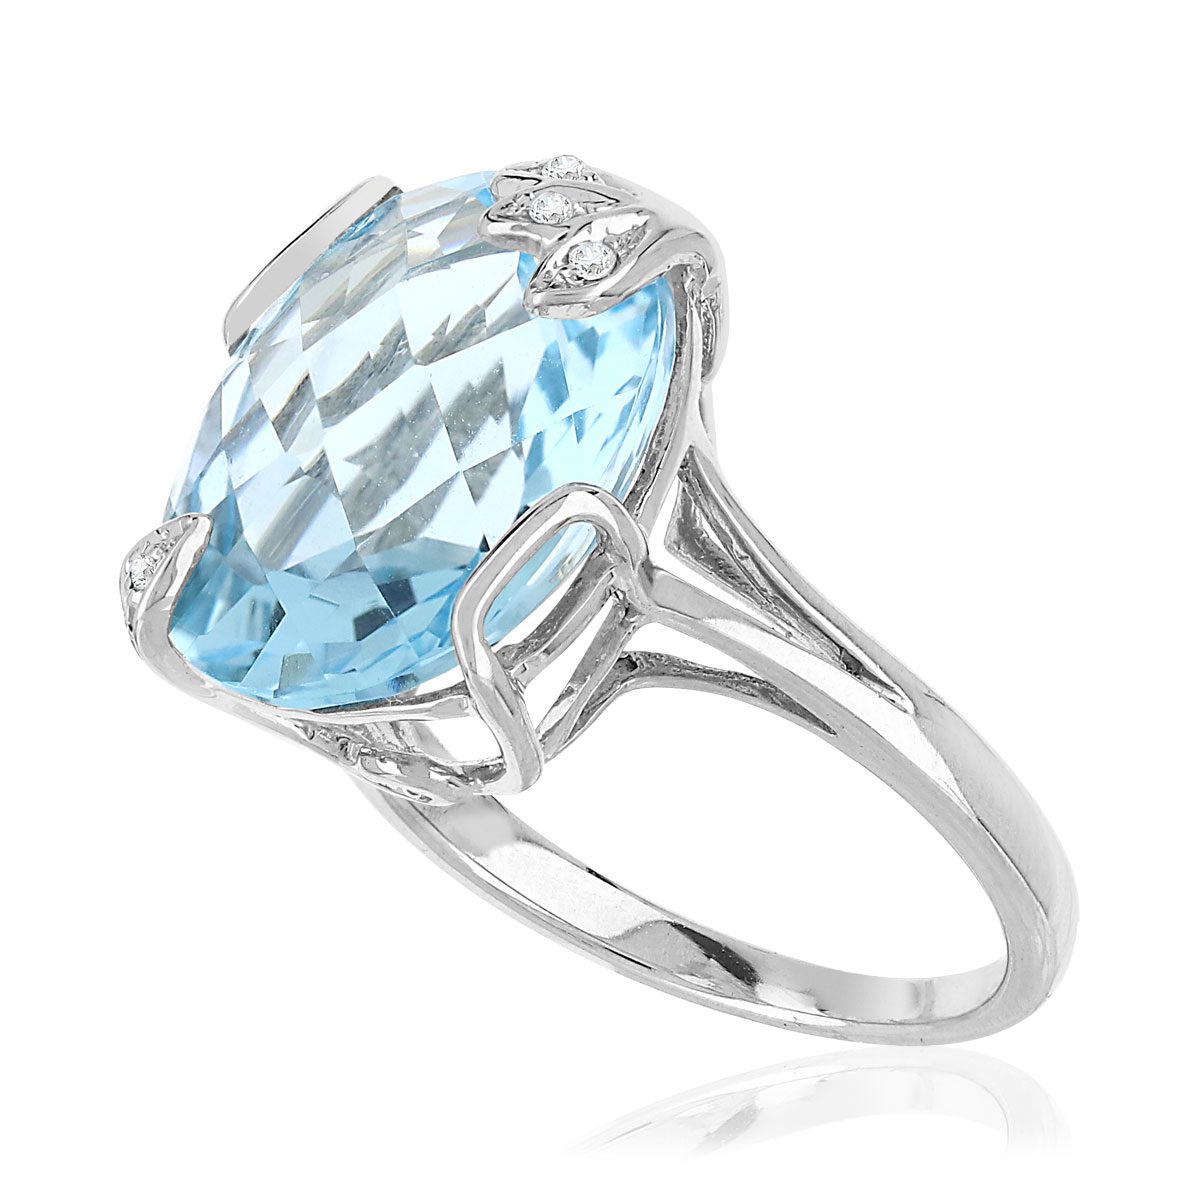 Bague or blanc 375 diamants topaze - vue 3